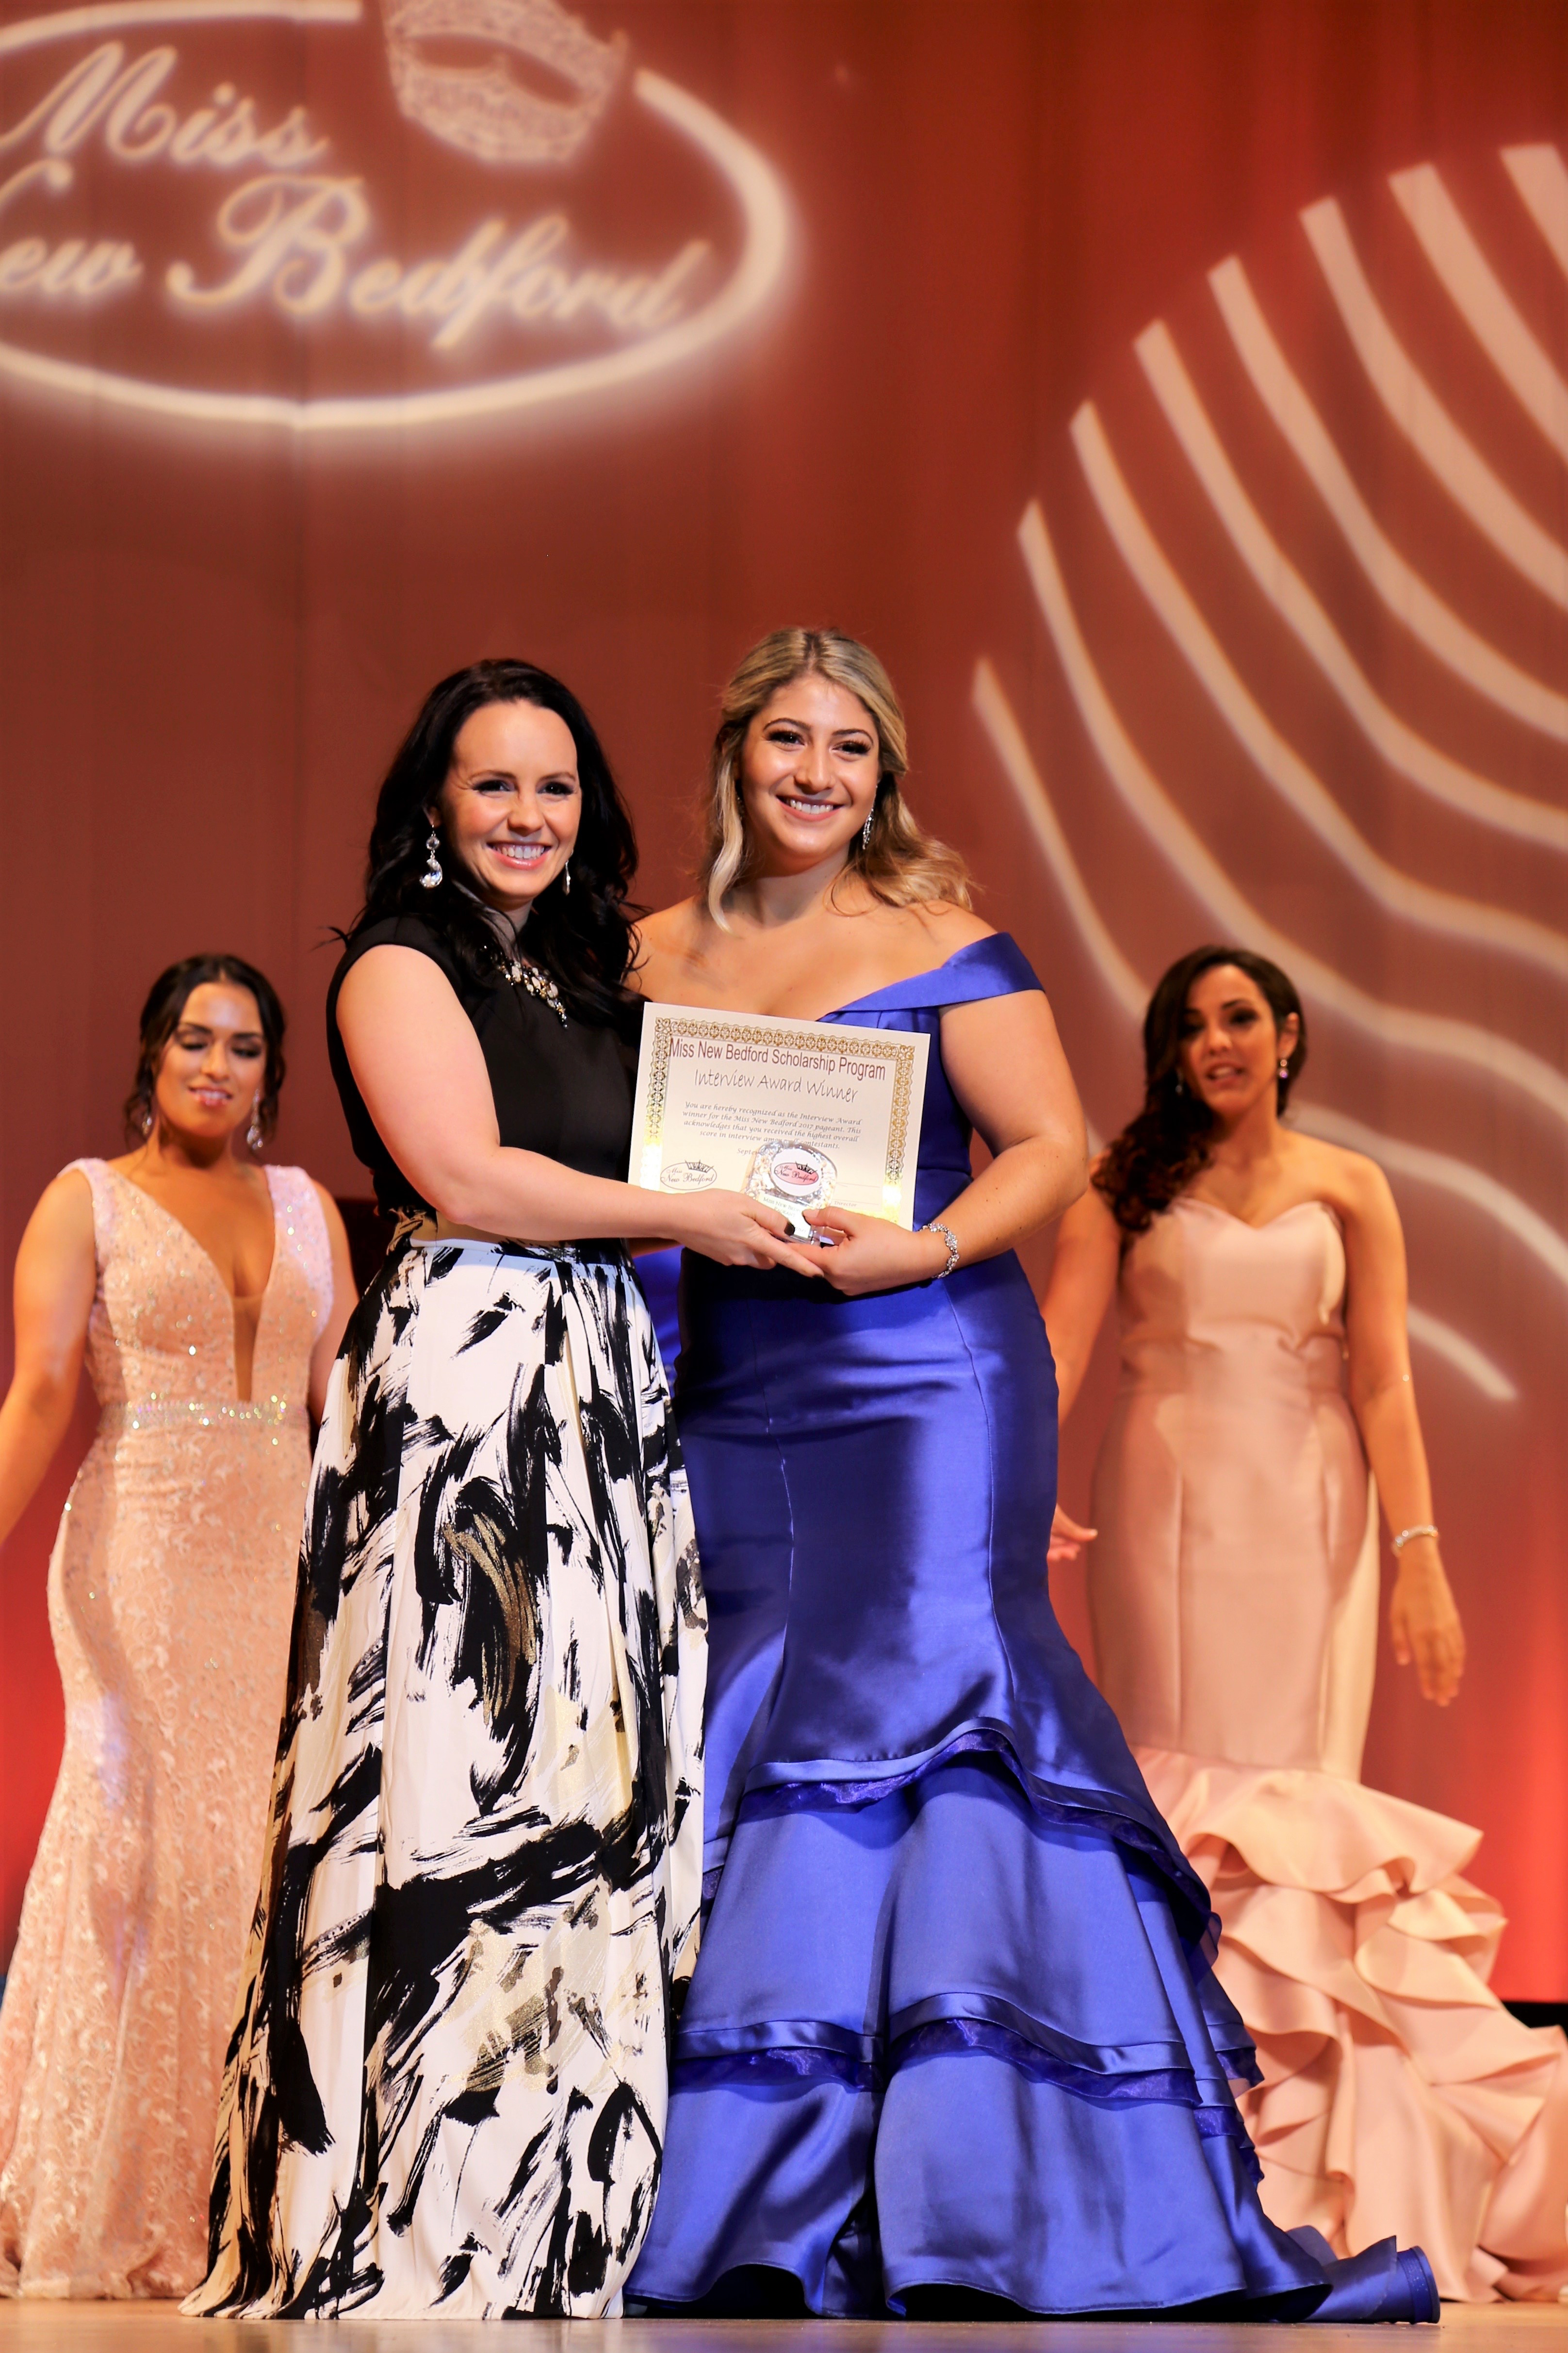 Kenzie Moniz receives the Interview Award standing on stage in a floor-length shiny purple dress.